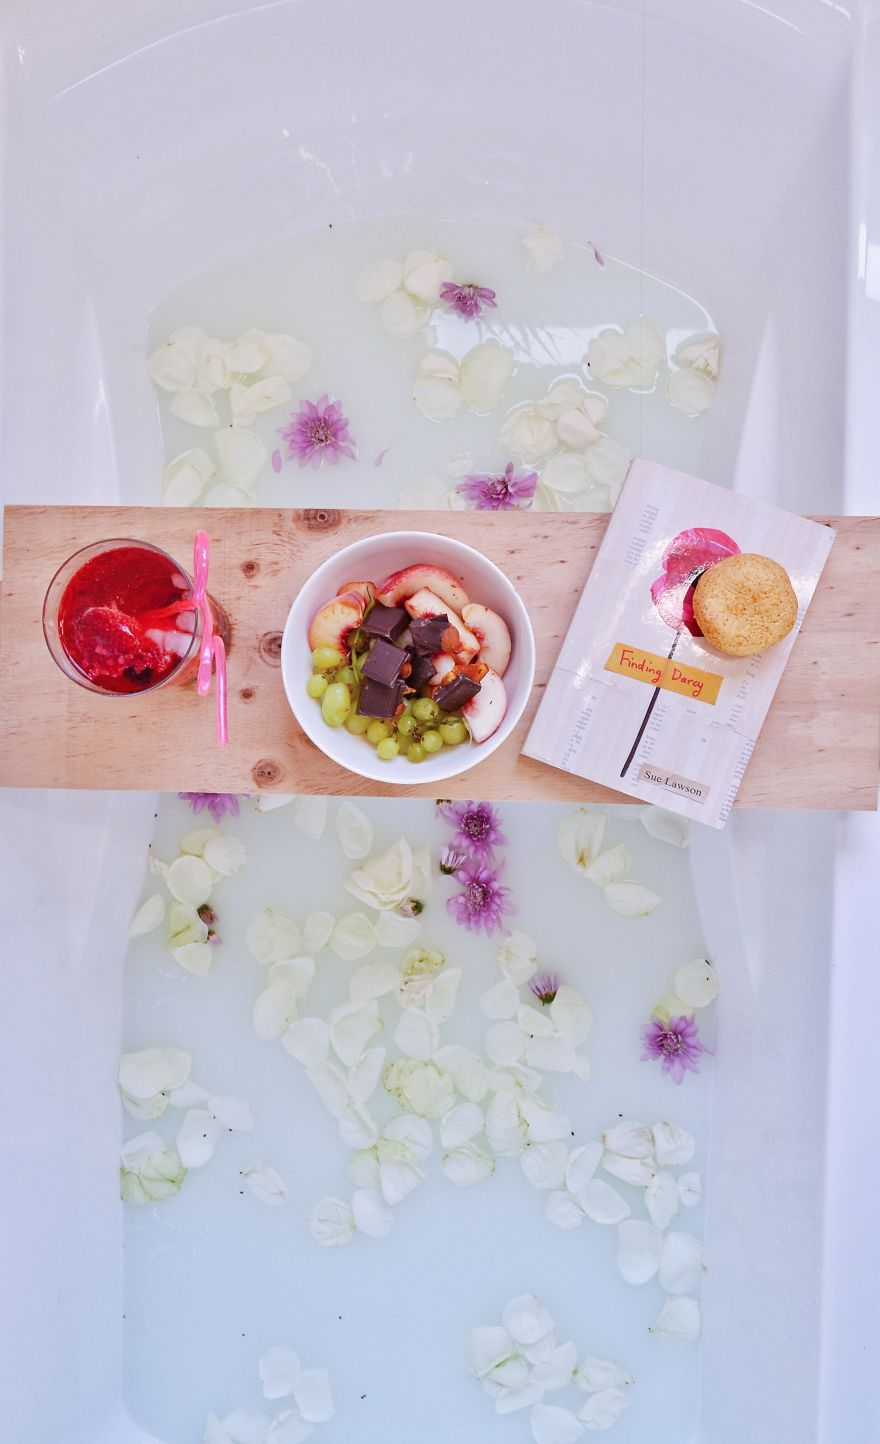 Why Read In Bed When You Can Soak In A Hot Bath With The Full Aroma Of Freshly Picked Flower Petals?